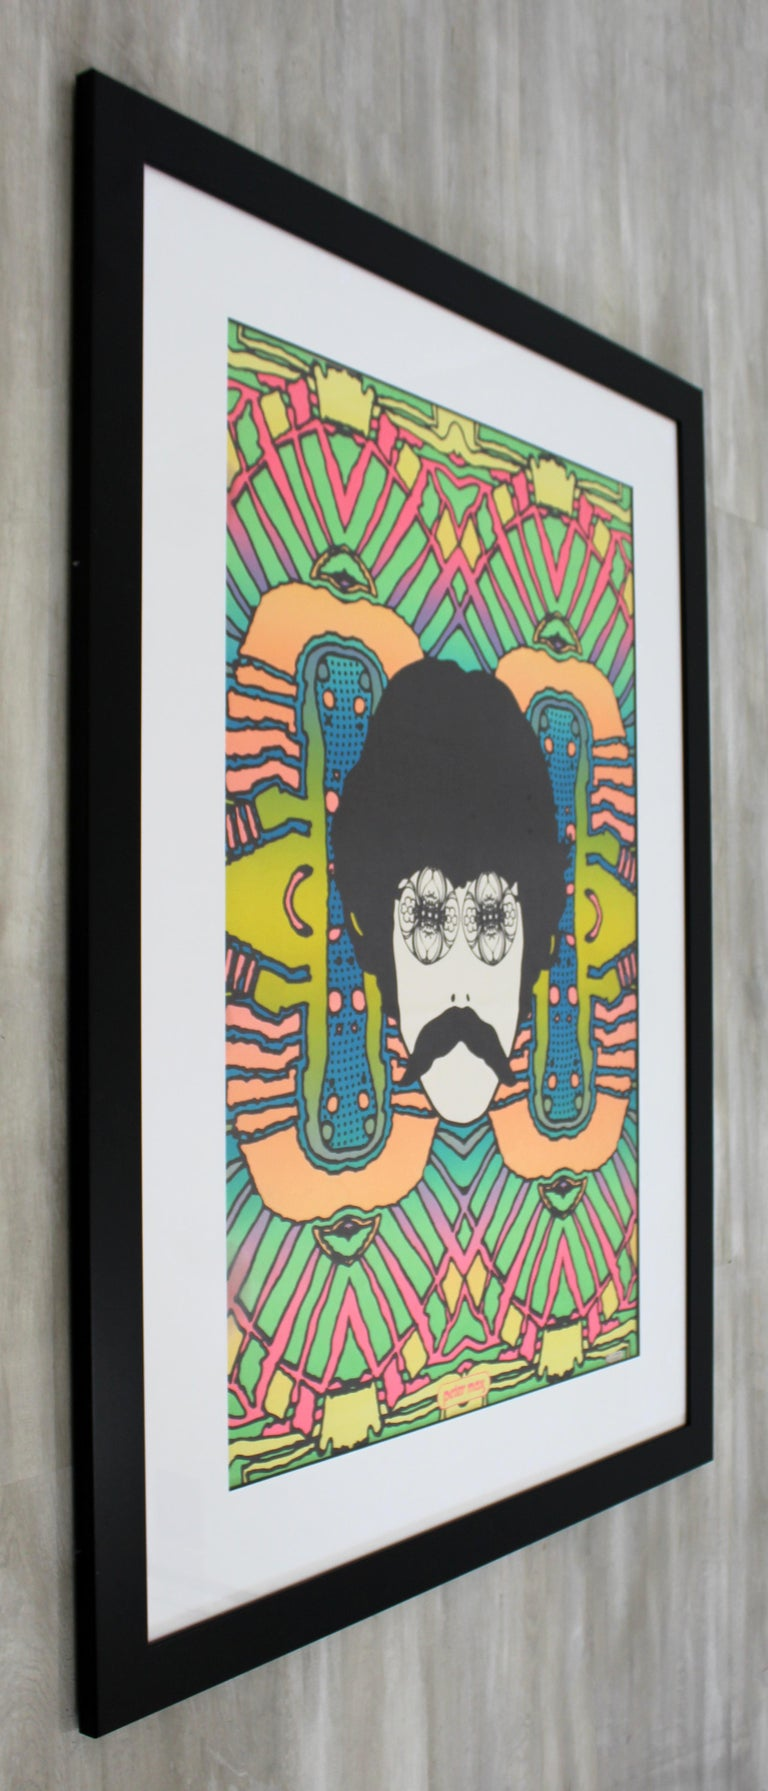 Mid-Century Modern Framed Peter Max Self Portrait Poster, 1960s In Good Condition For Sale In Keego Harbor, MI